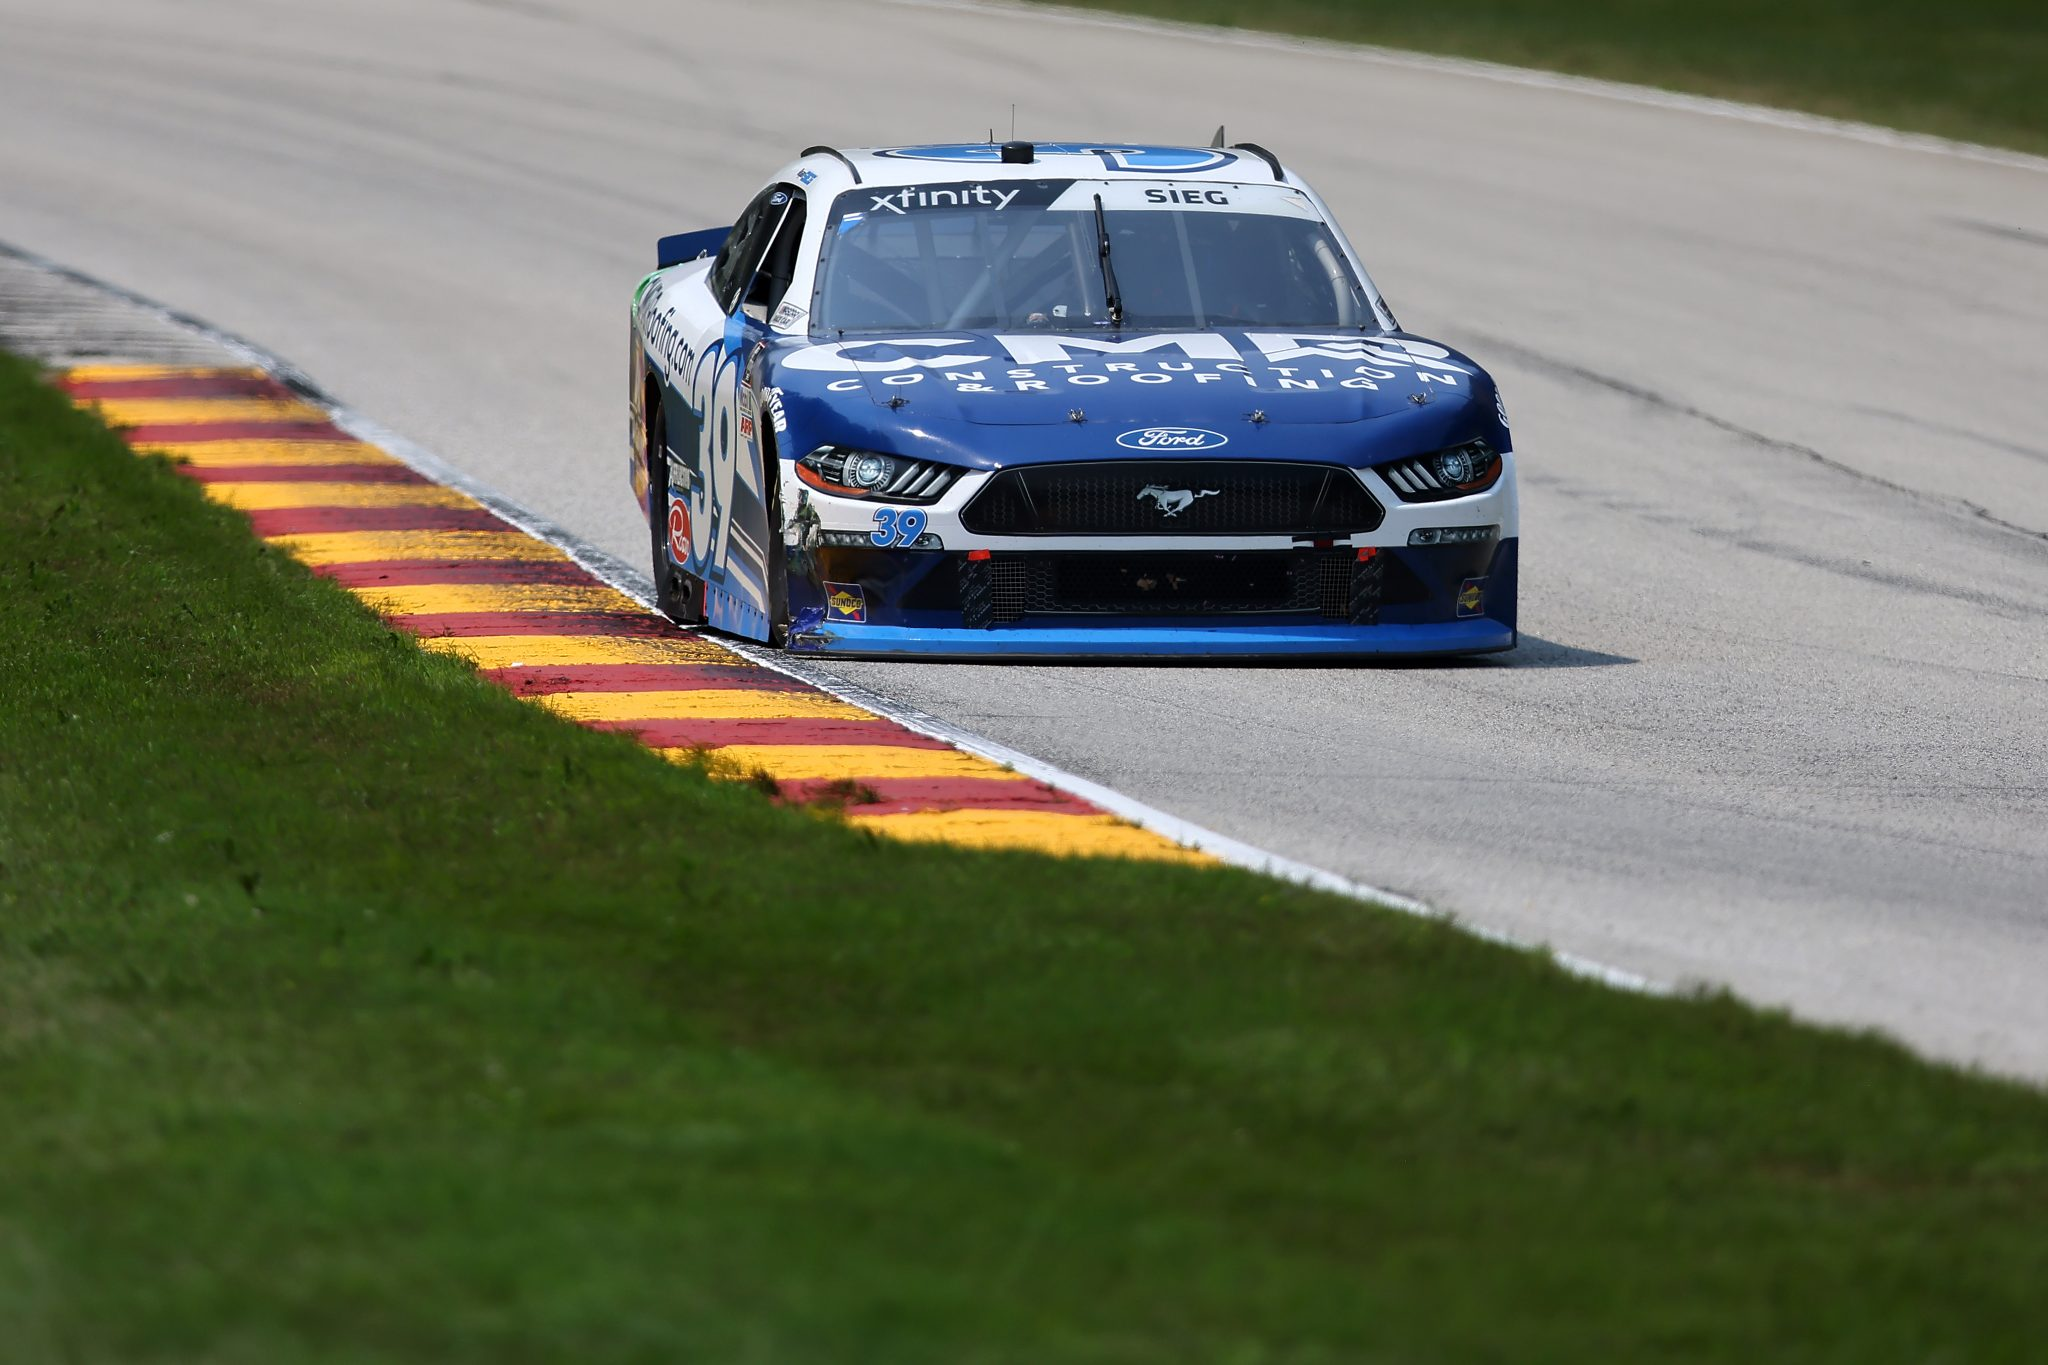 ELKHART LAKE, WISCONSIN - JULY 03: Ryan Sieg, driver of the #39 CMR Construction and Roofing/A-Game Ford, drives during the NASCAR Xfinity Series Henry 180 at Road America on July 03, 2021 in Elkhart Lake, Wisconsin. (Photo by James Gilbert/Getty Images) | Getty Images